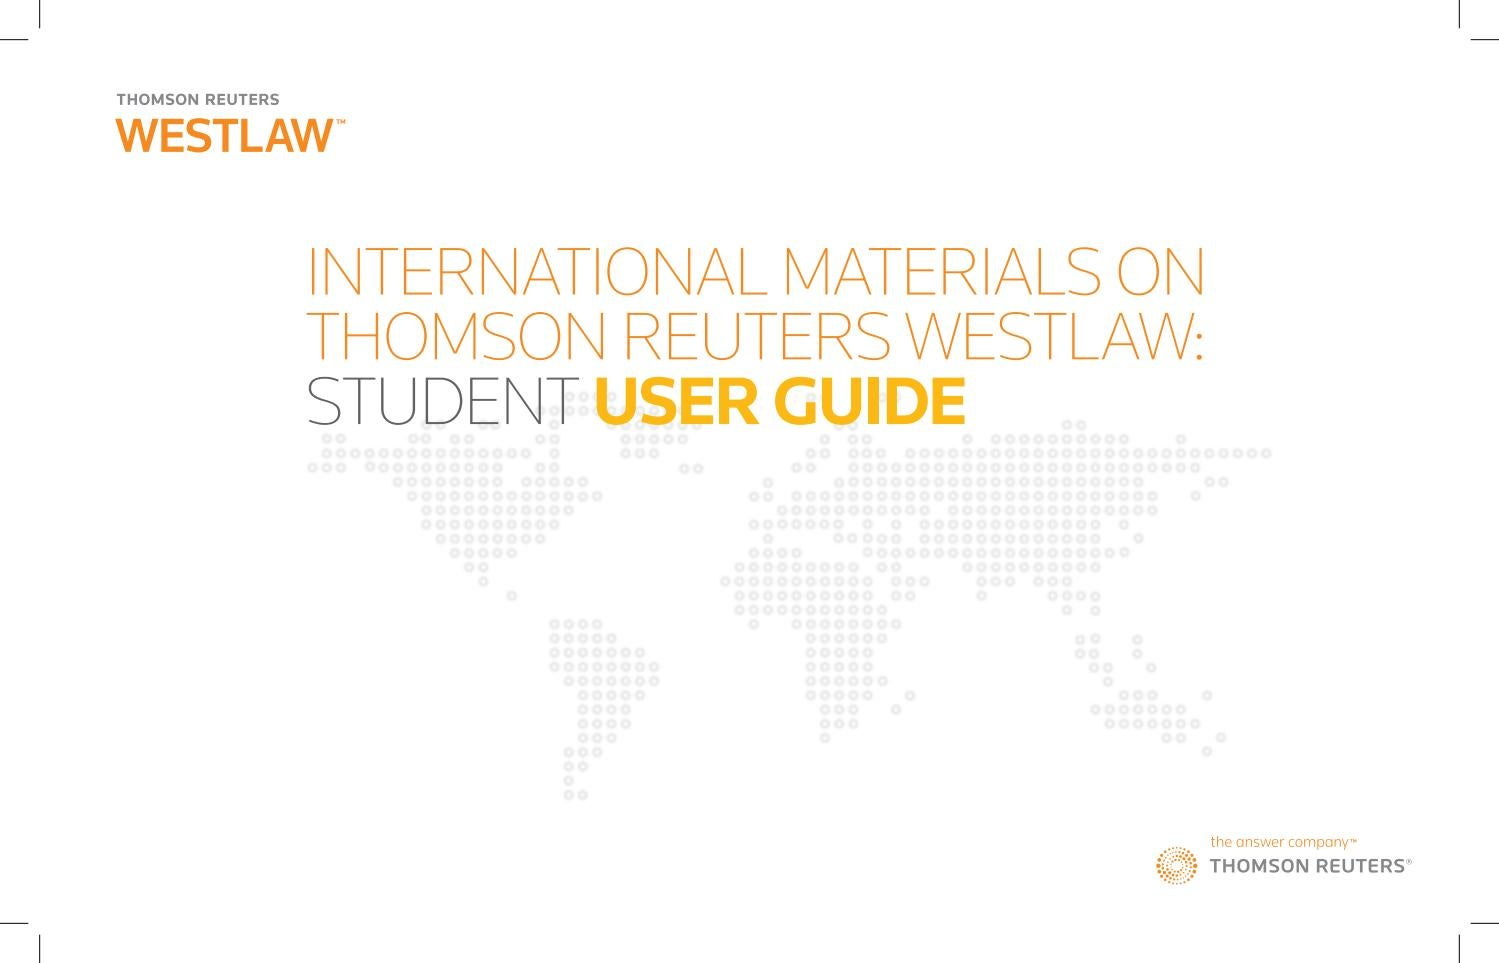 Thomson Reuters Westlaw Student User Guide 2017 by Newcastle